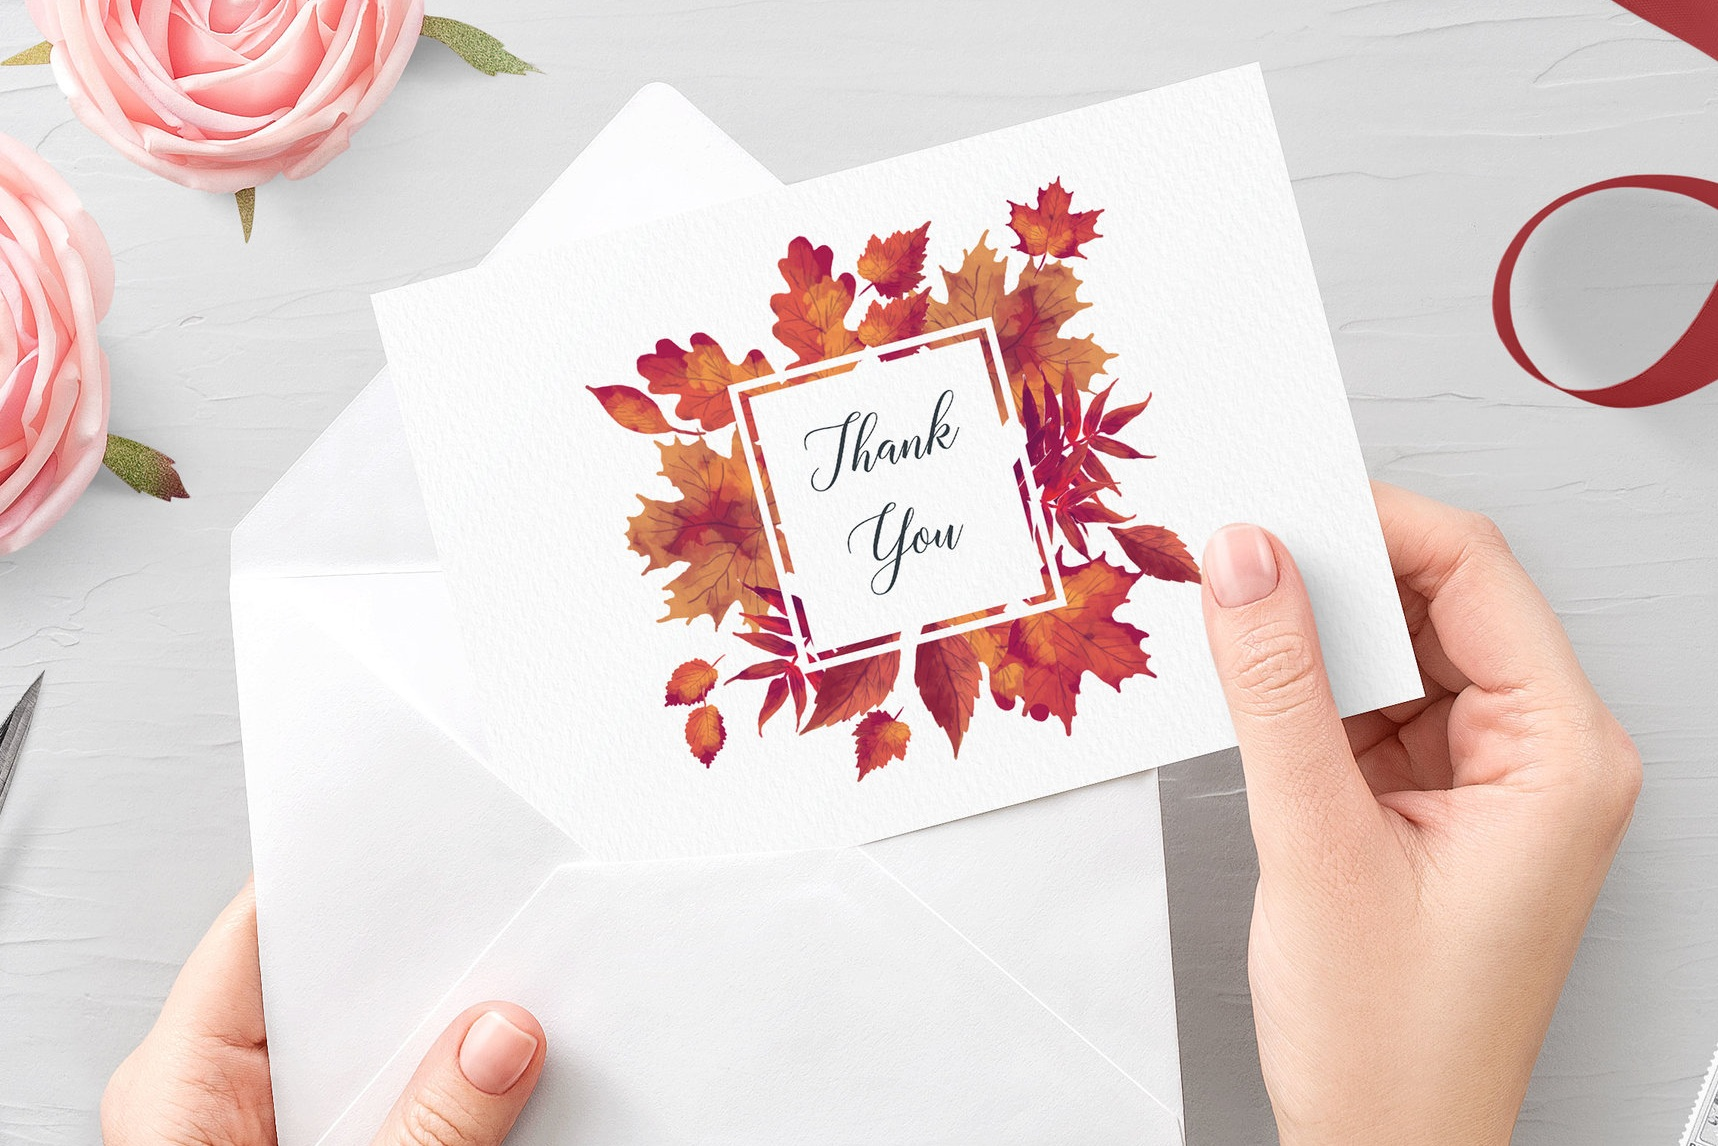 Burnt Oak - Vibrant autumn leaves and classical typography make our Burnt Oak collection a fantastic choice for an autumnal wedding.Our Thank You Cards can be printed single-sided for you to write by hand on the reverse, or printed double-sided with a passage of your choice. Envelopes are included as standard.Pricing£1.09 - single-sided / £1.25 - double-sided